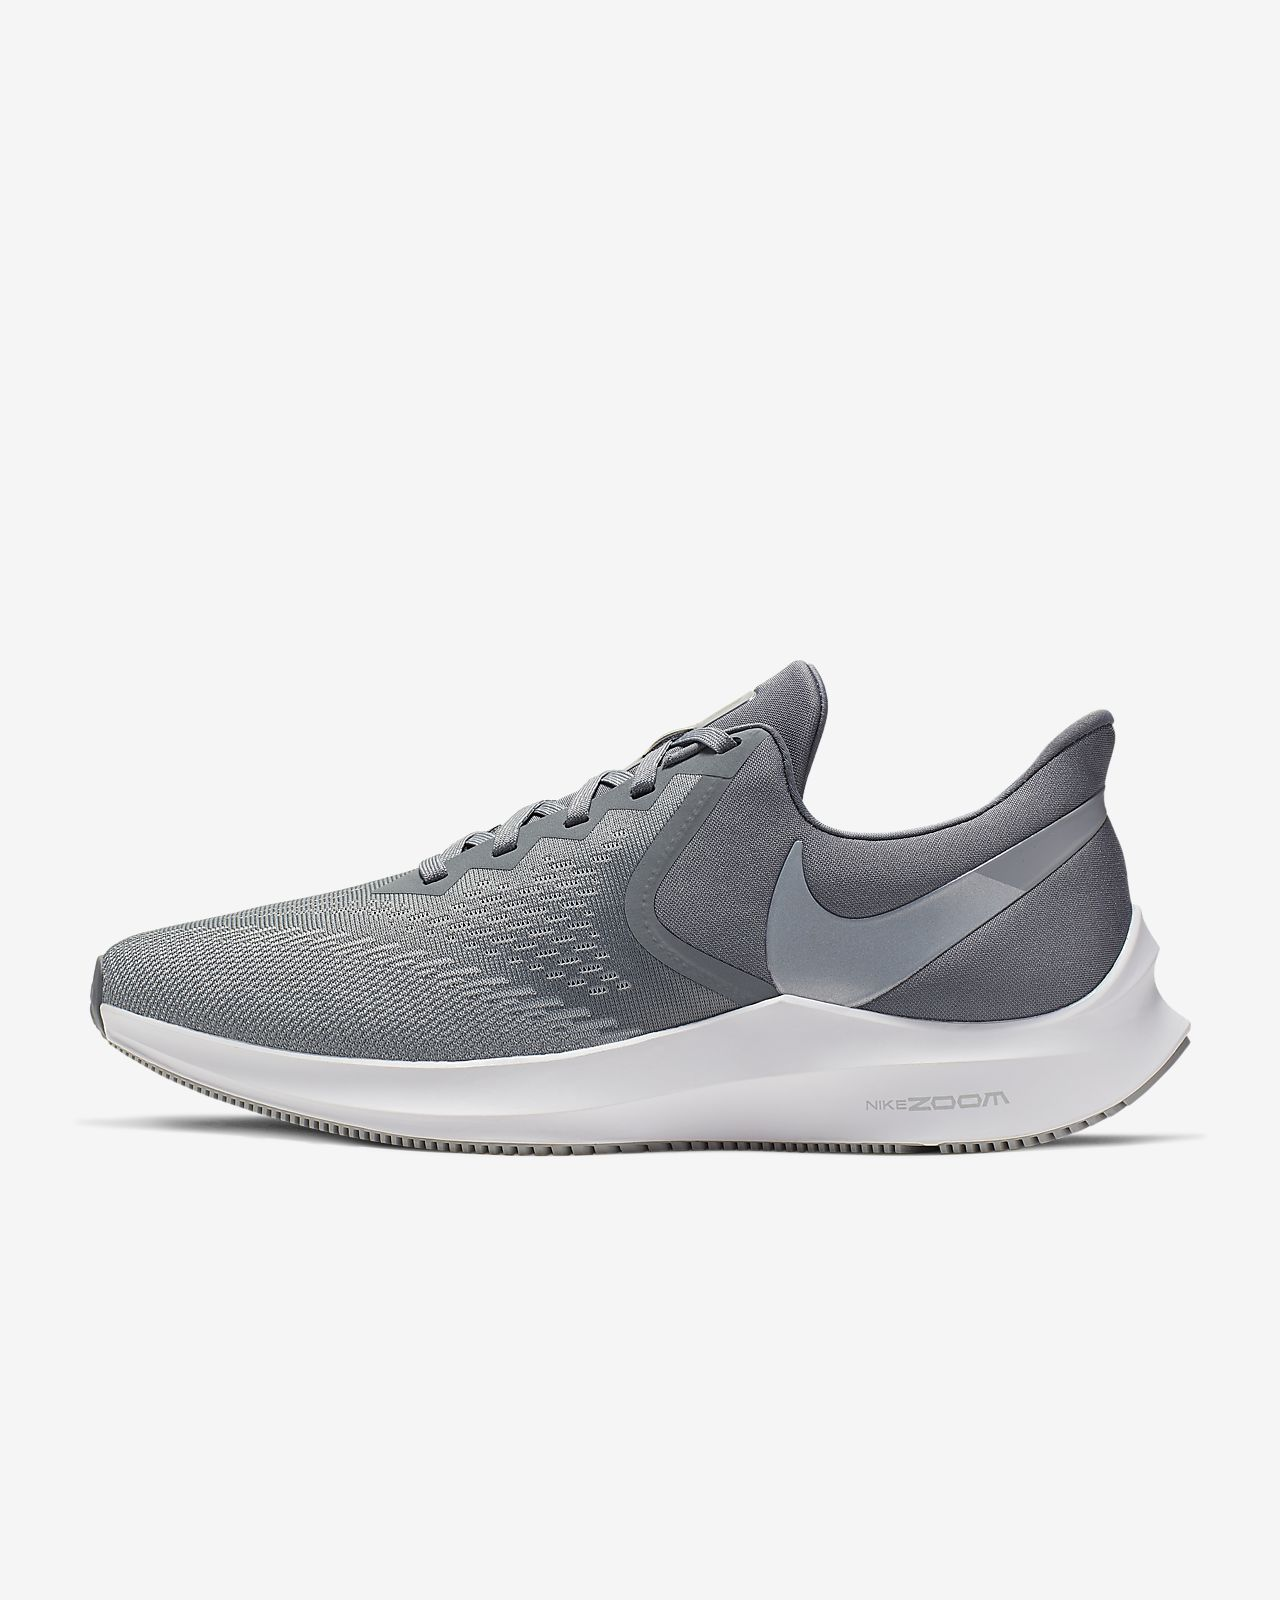 beb6d8a79 Nike Air Zoom Winflo 6 Men s Running Shoe (Extra-Wide). Nike.com